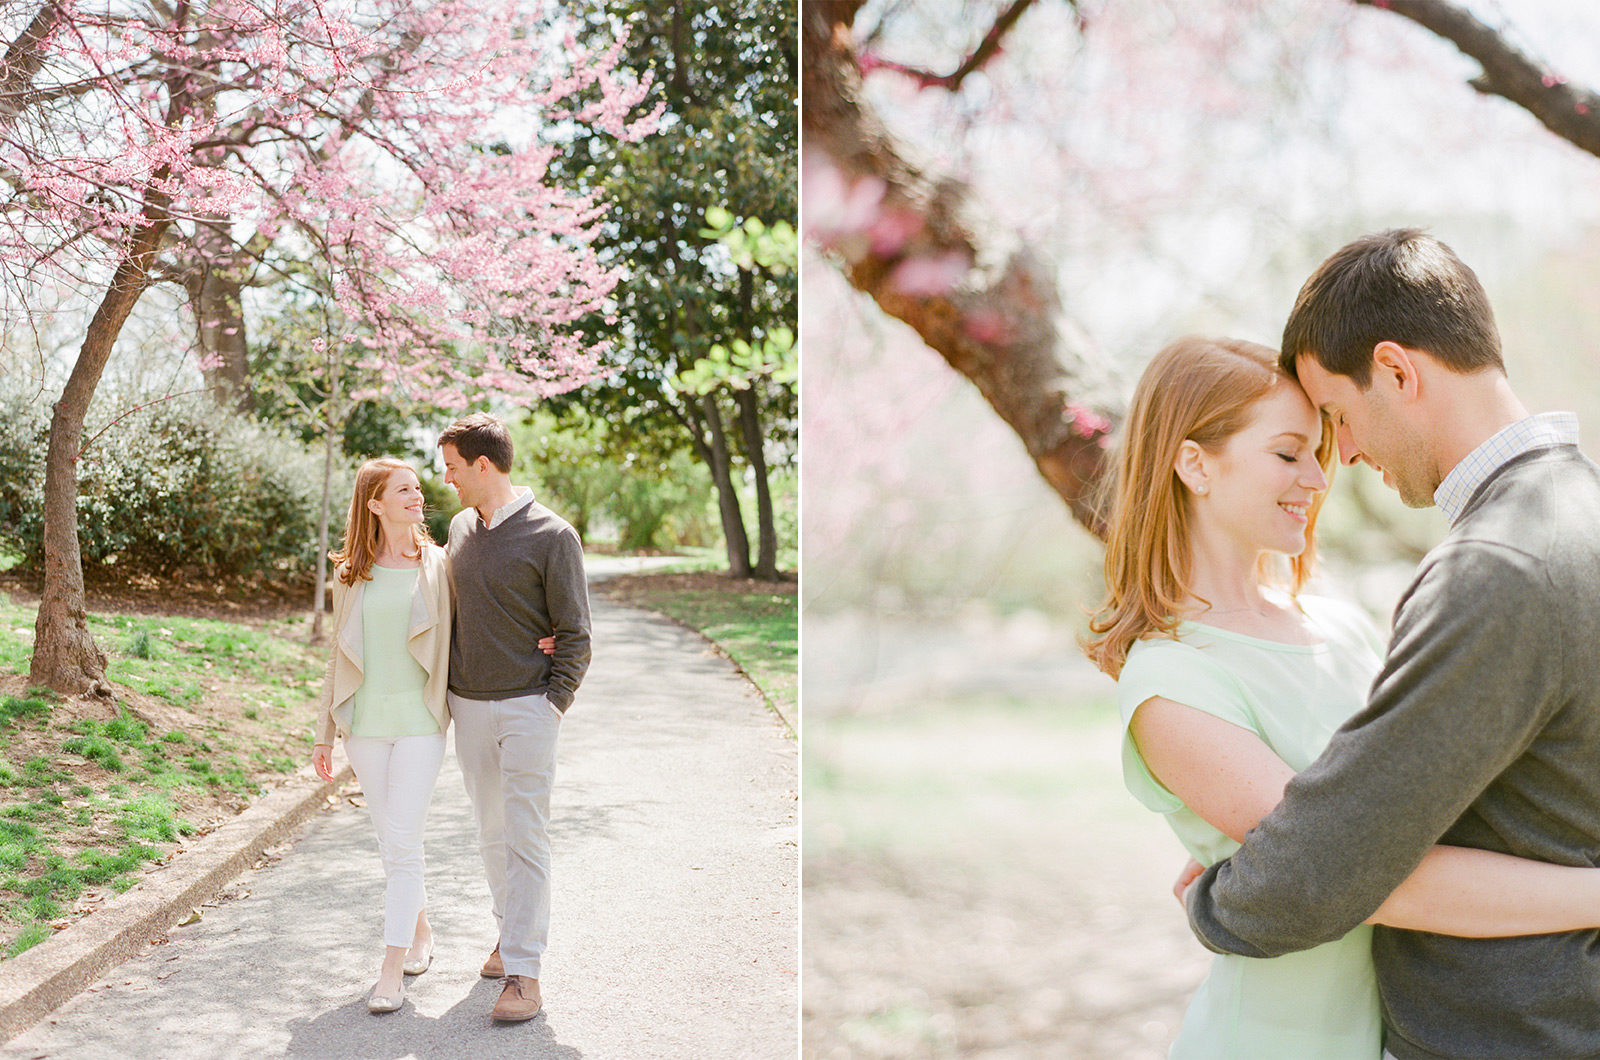 fine-art-virginia-engagement-photography-21